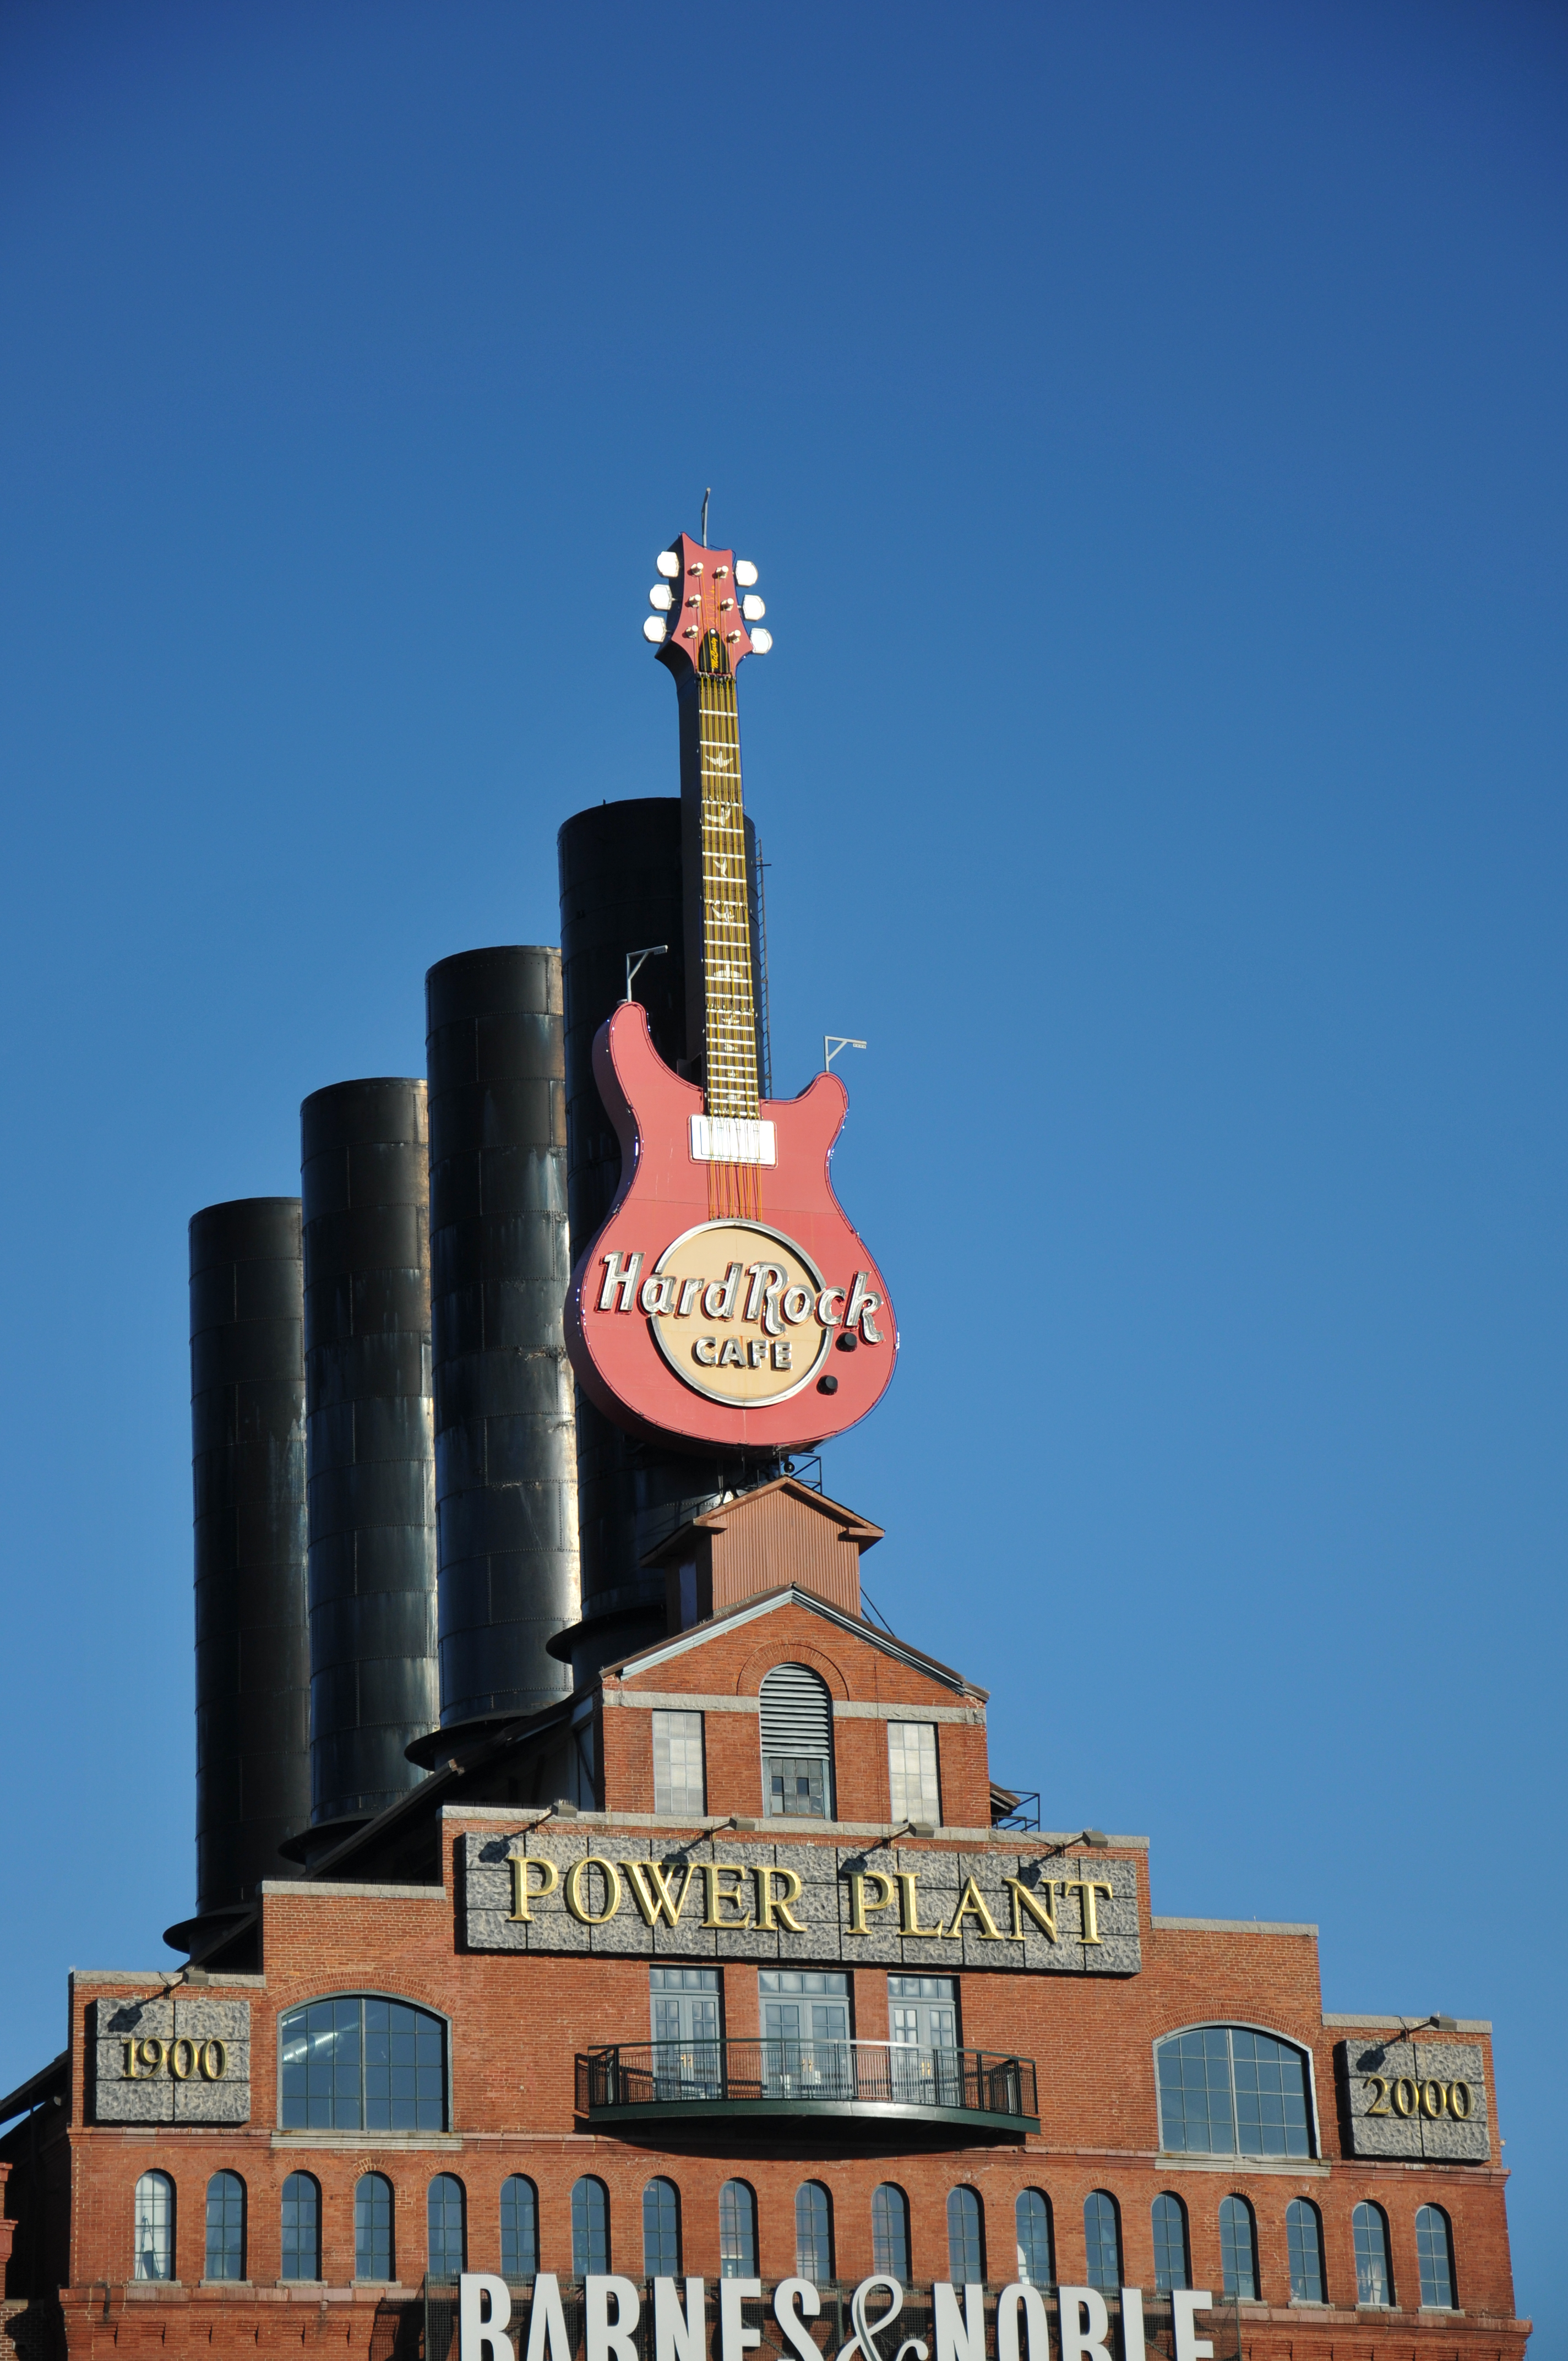 Power Plant and Hard Rock Guitar